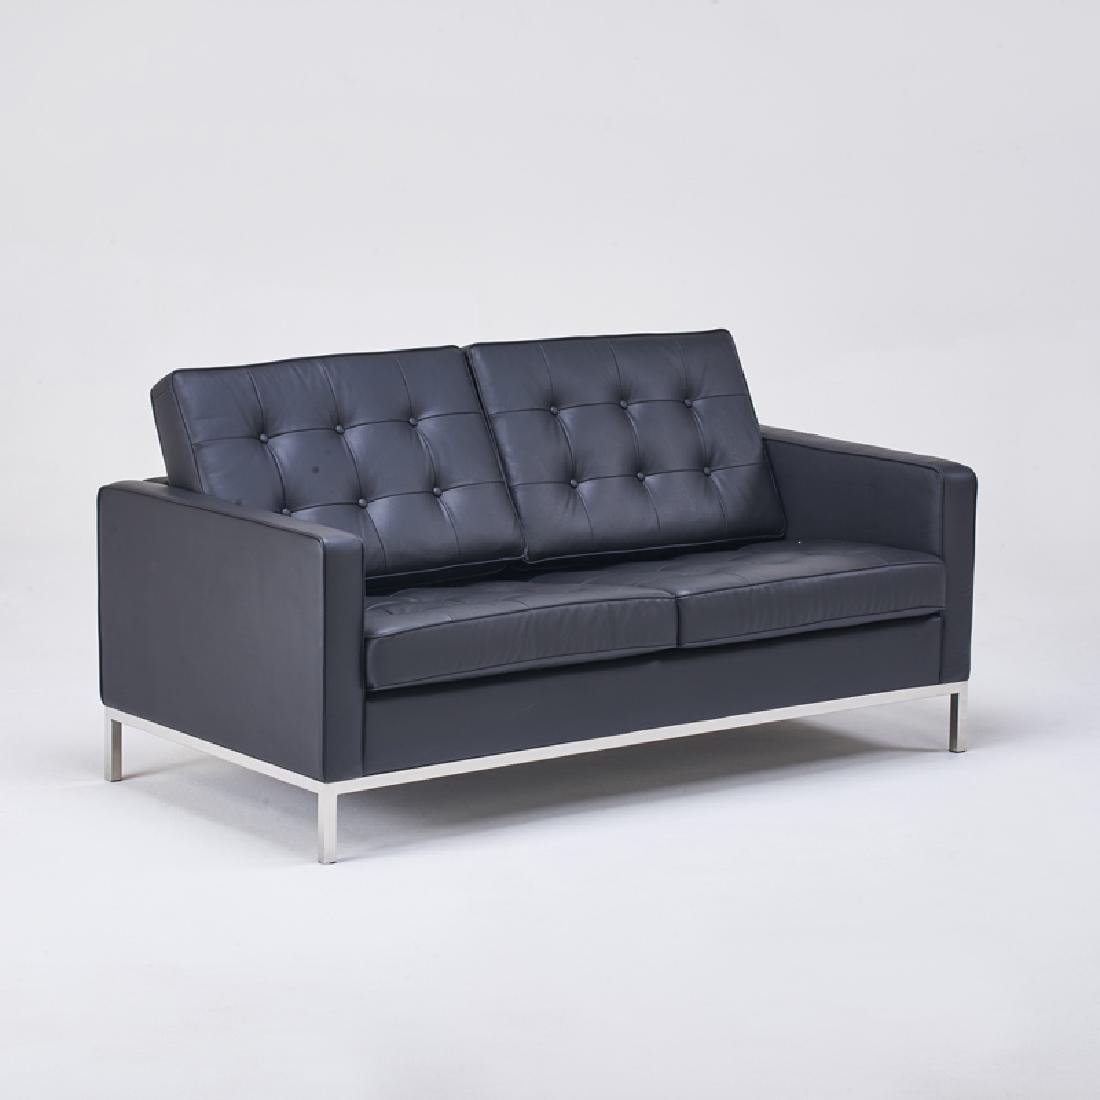 STYLE OF FLORENCE KNOLL